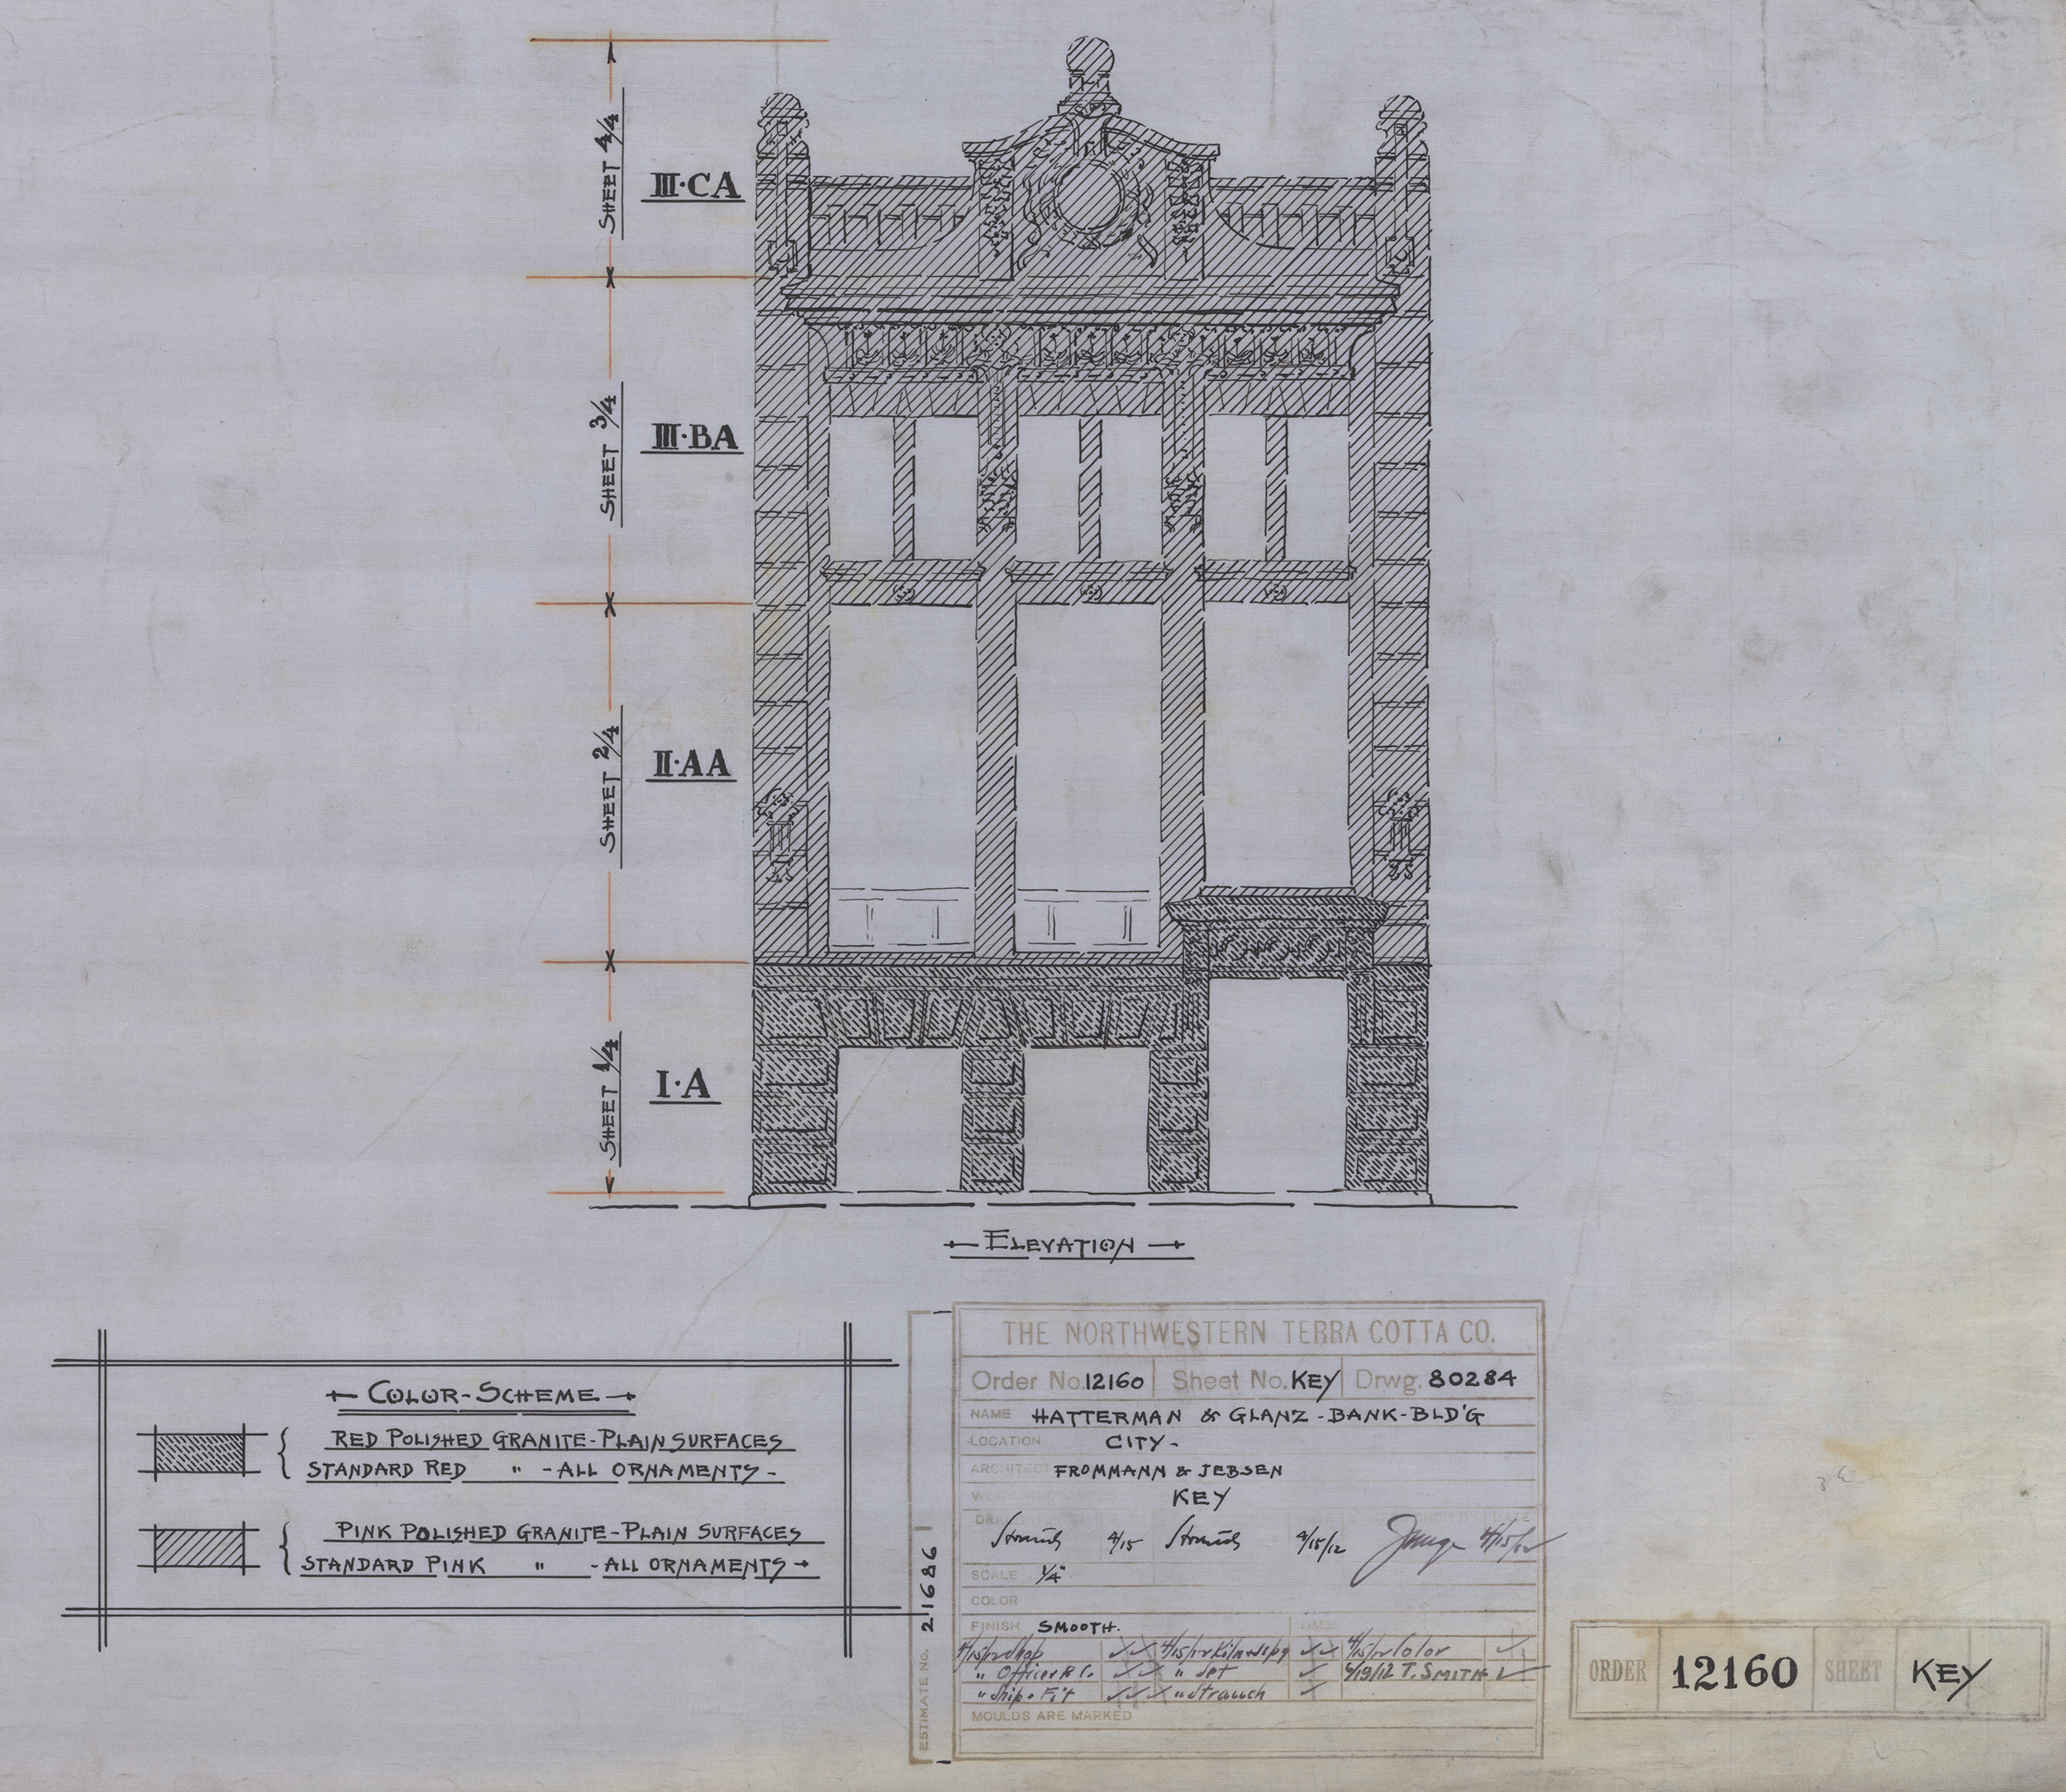 Original drawings for the Hatterman and Glanz Bank Building from the Northwestern Terra Cotta Company (order number 12160) via Frommann & Jebsen Architects in Chicago, drank on April 15th, 1912. (courtesy of the  National Building Museum in Washington DC).